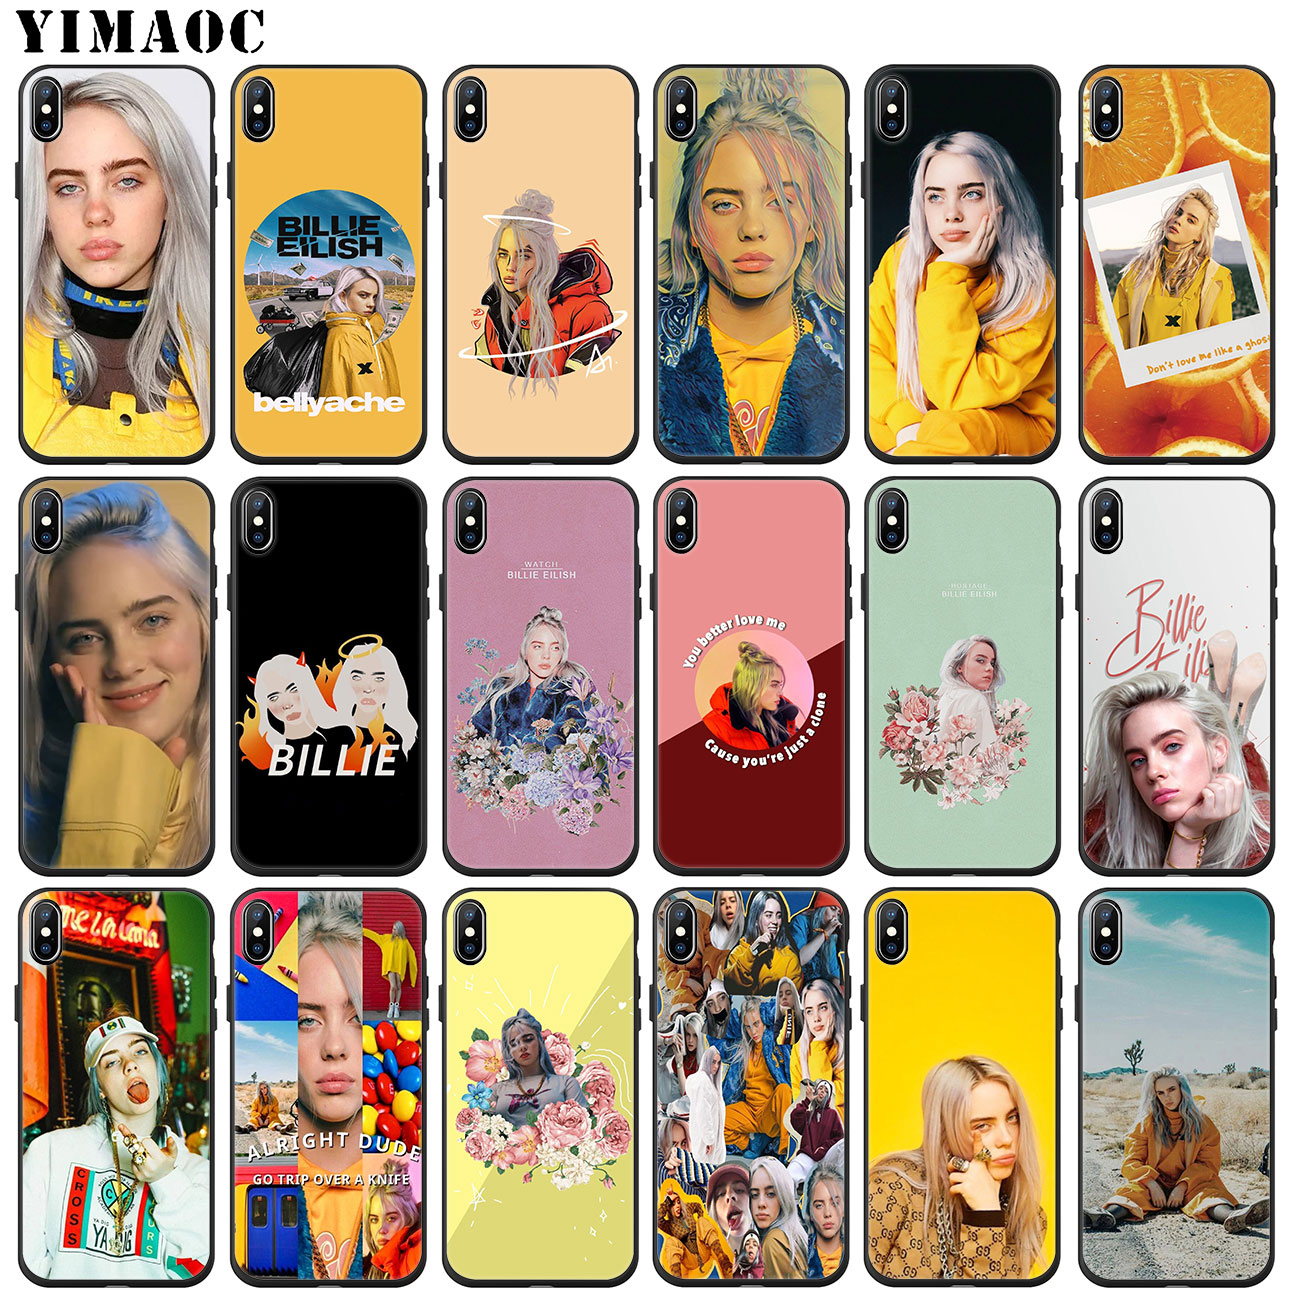 YIMAOC Billie Eilish Hot Music Soft Silicone Phone Case